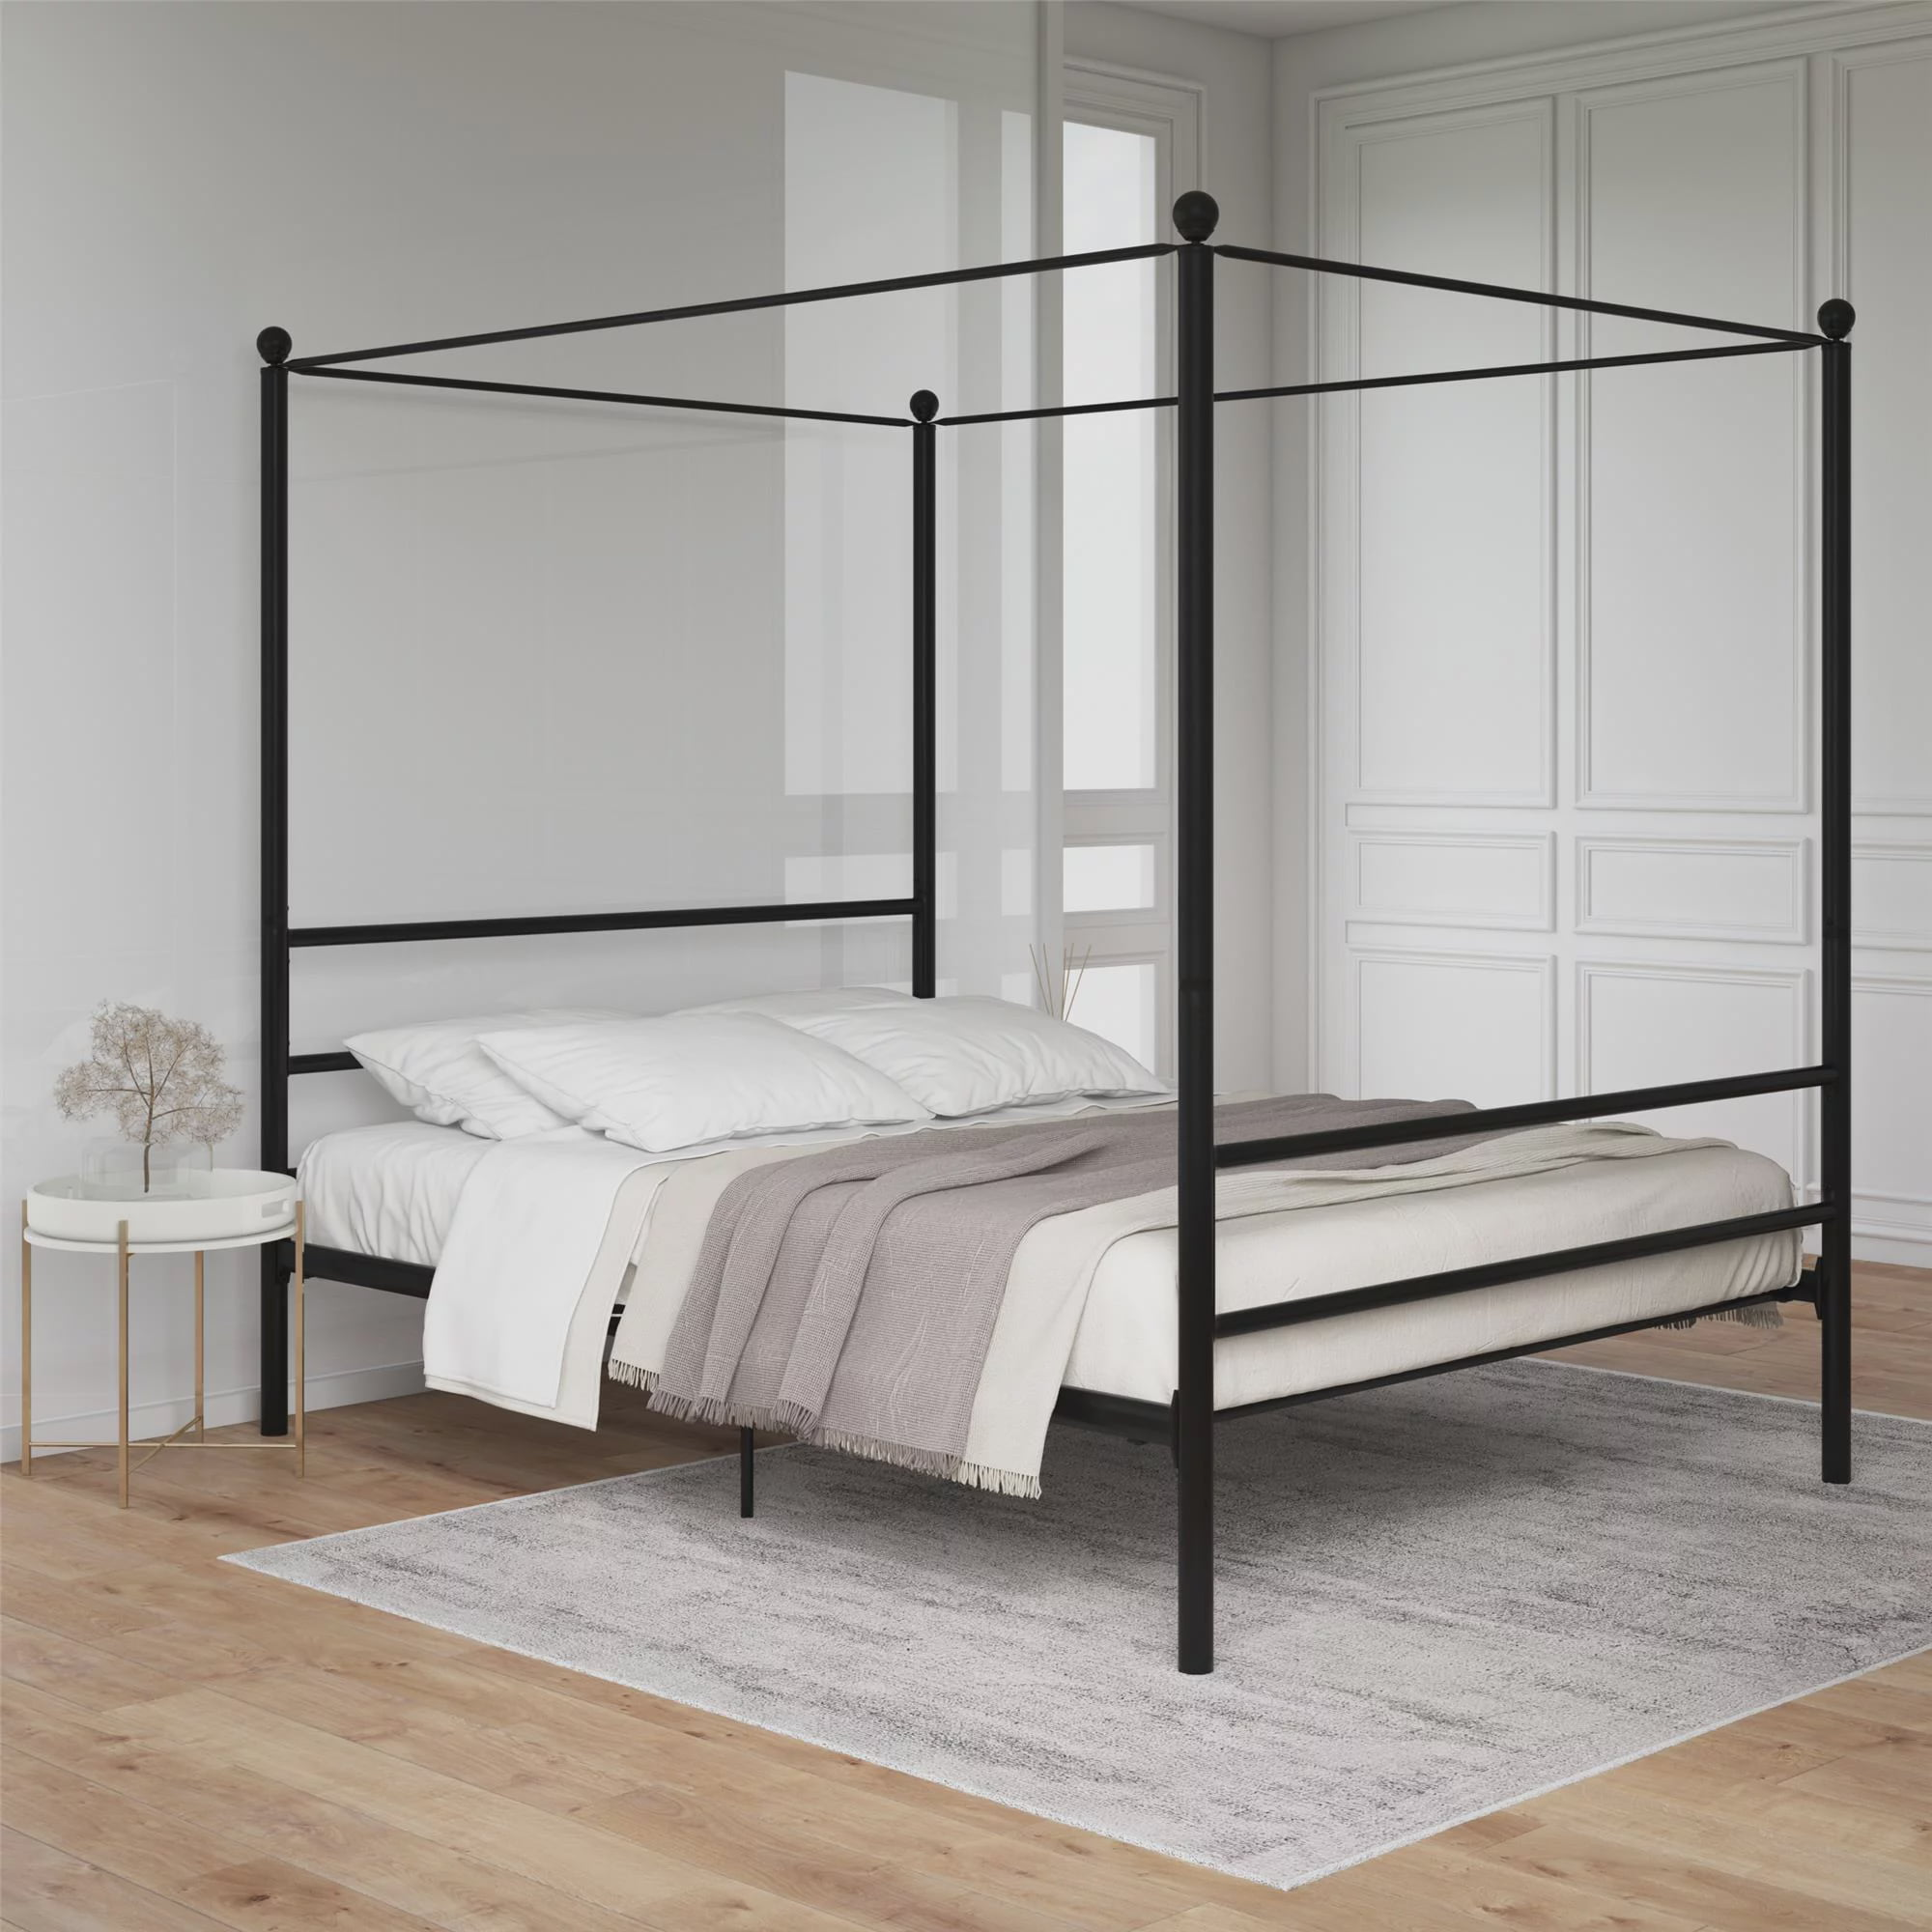 Picture of: Mainstays Queen Black Metal Canopy Bed Multiple Options Available Walmart Com Walmart Com